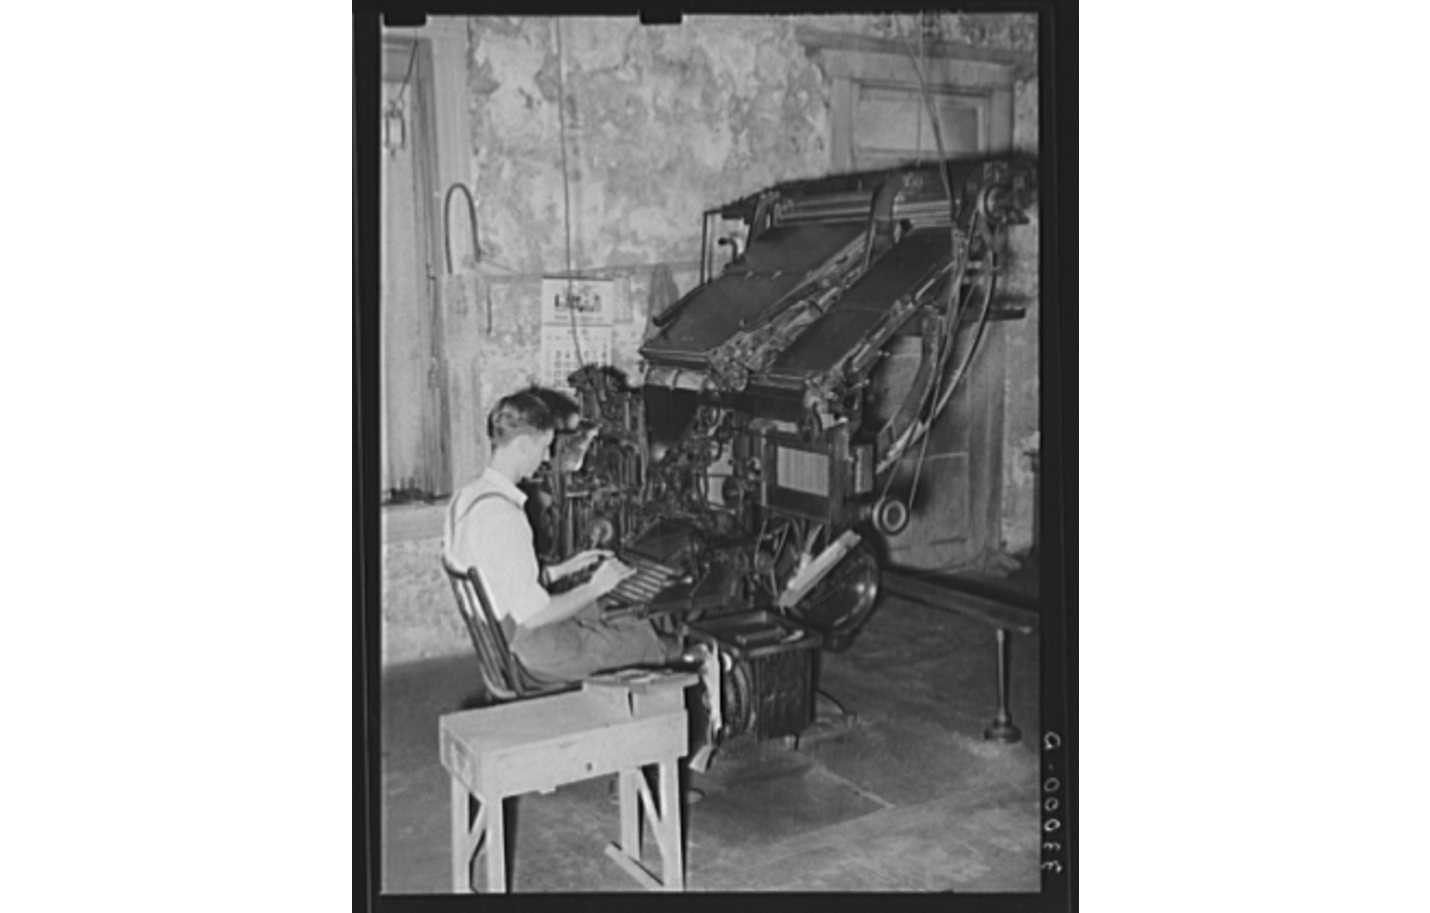 Photo of old linotype machine for printing newspapers.